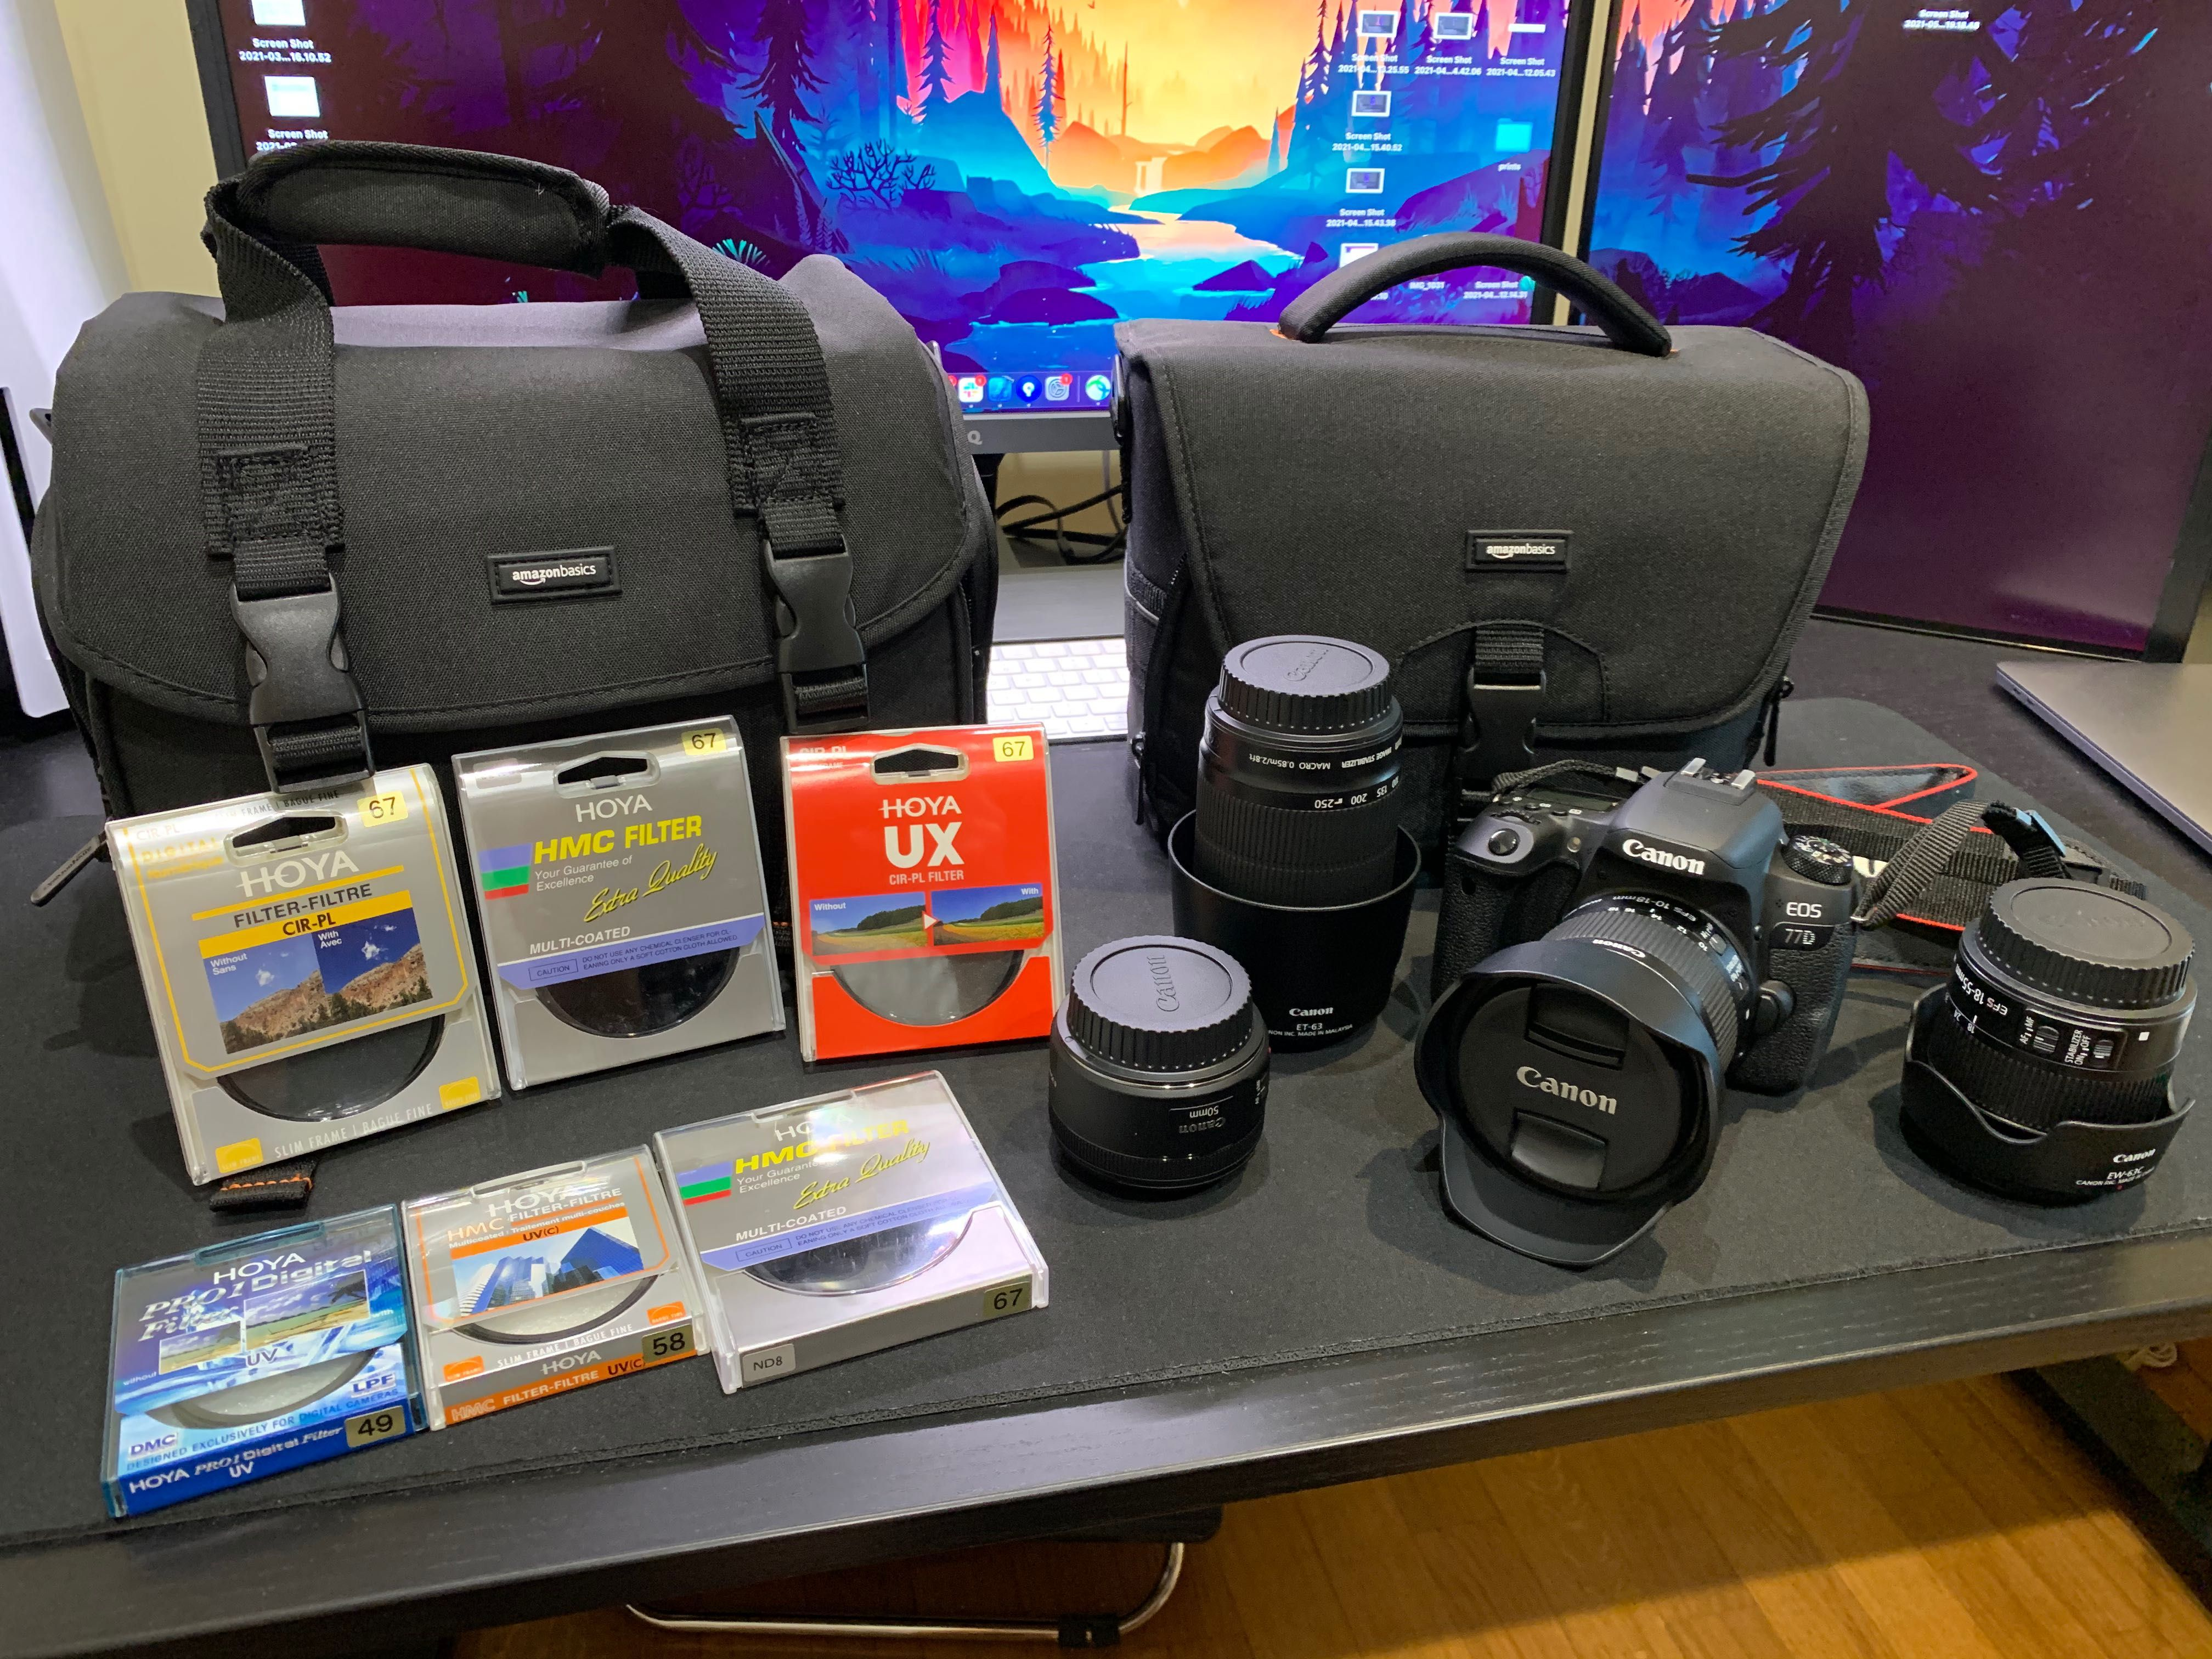 Kit CANON EOS 77D + EF-S 10-18mm + 18-55mm + 55-250mm + EF 50mm